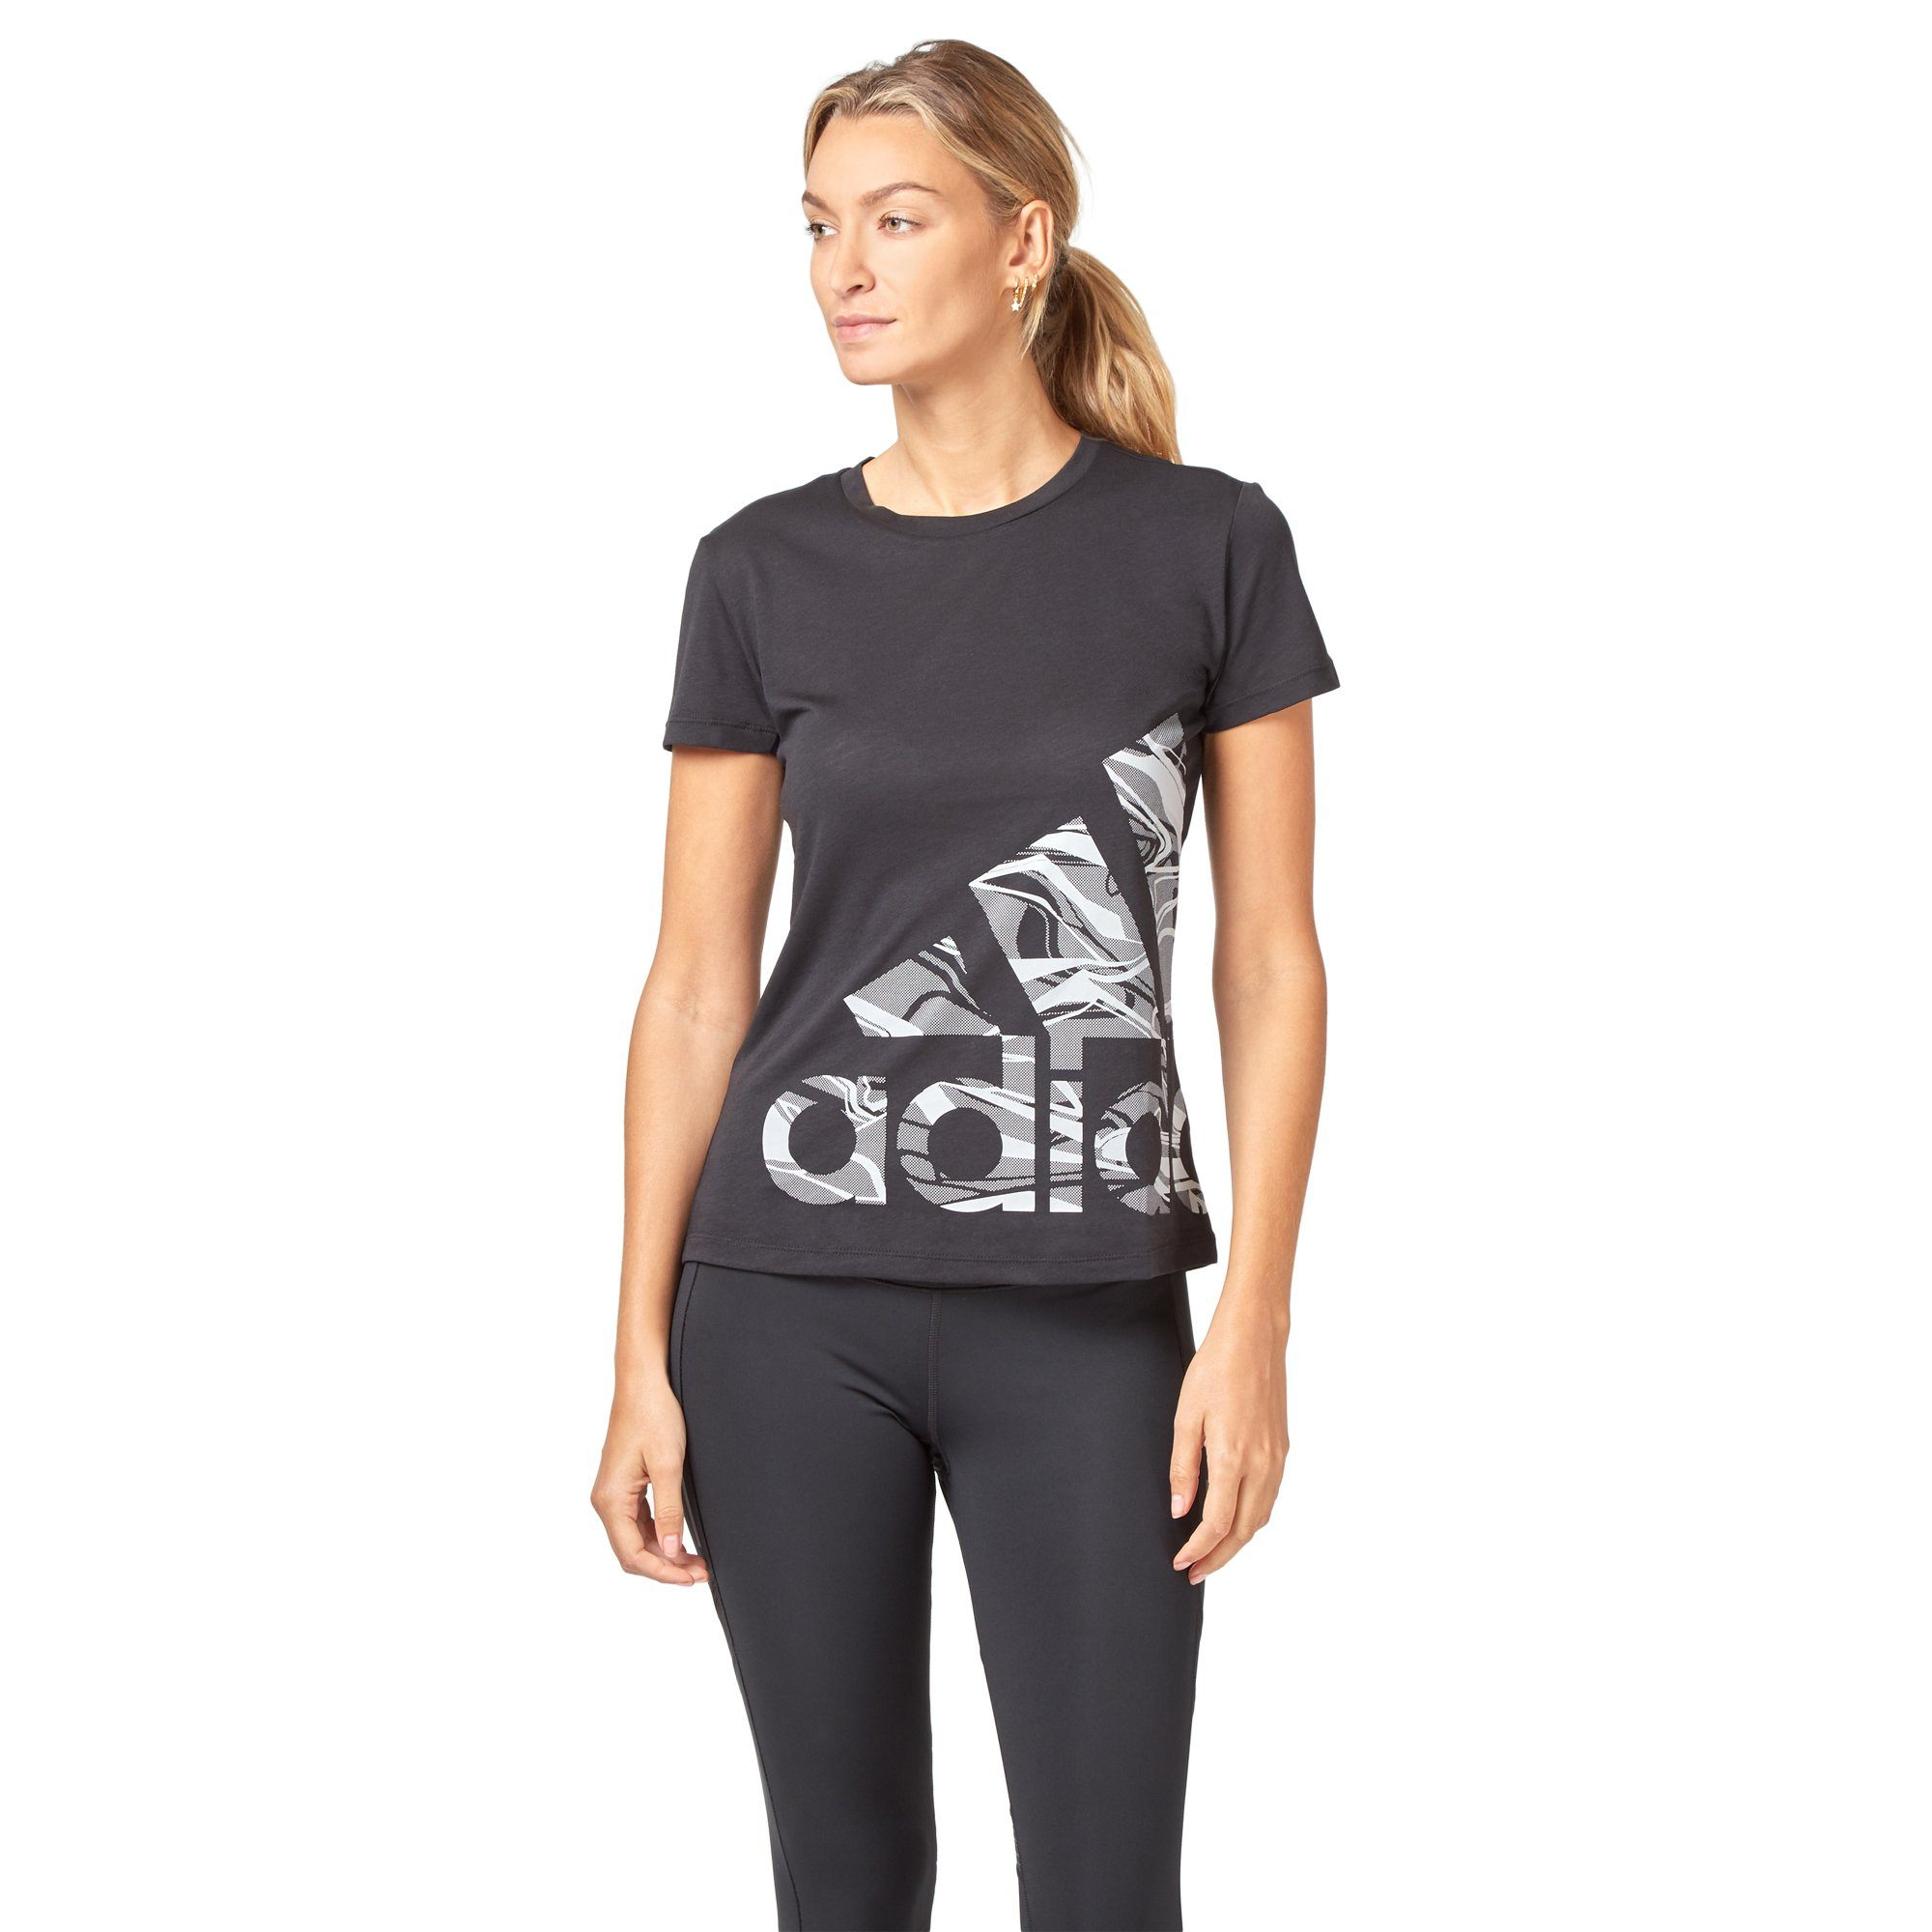 Adidas Women's Logo Tee - Black SportsPower Geelong  (2012421062715)